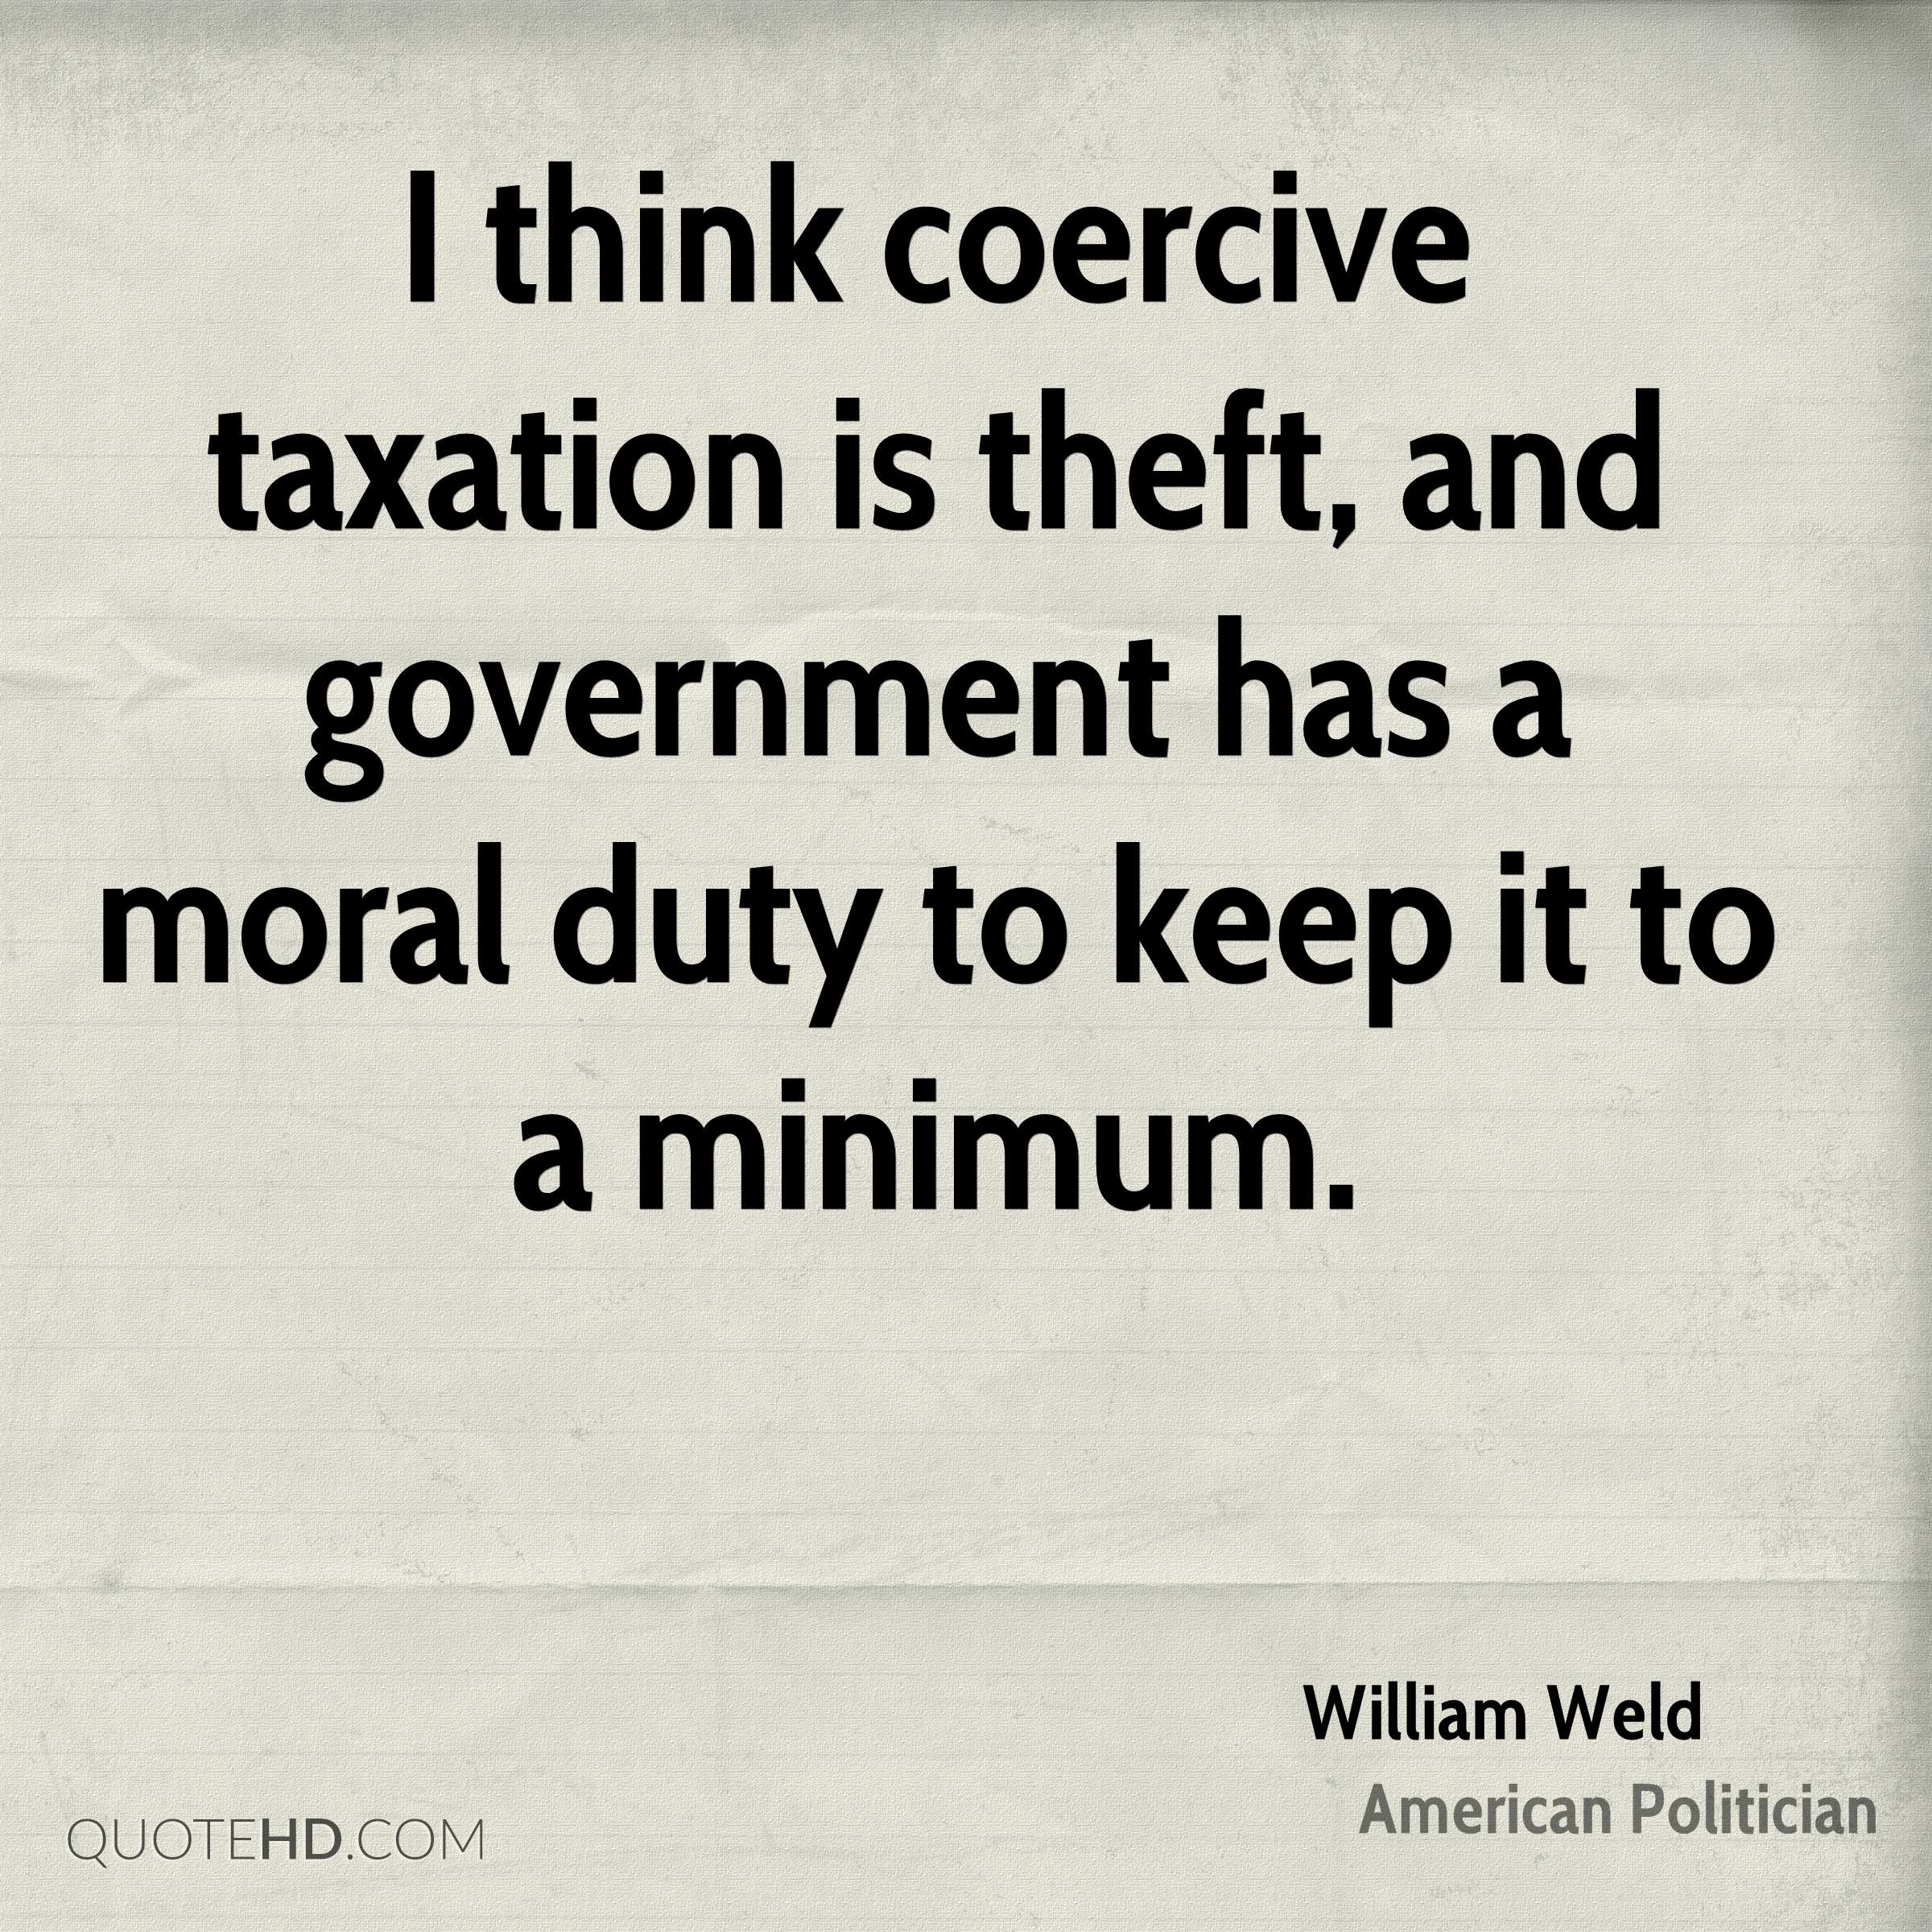 I think coercive taxation is theft, and government has a moral duty to keep it to a minimum.